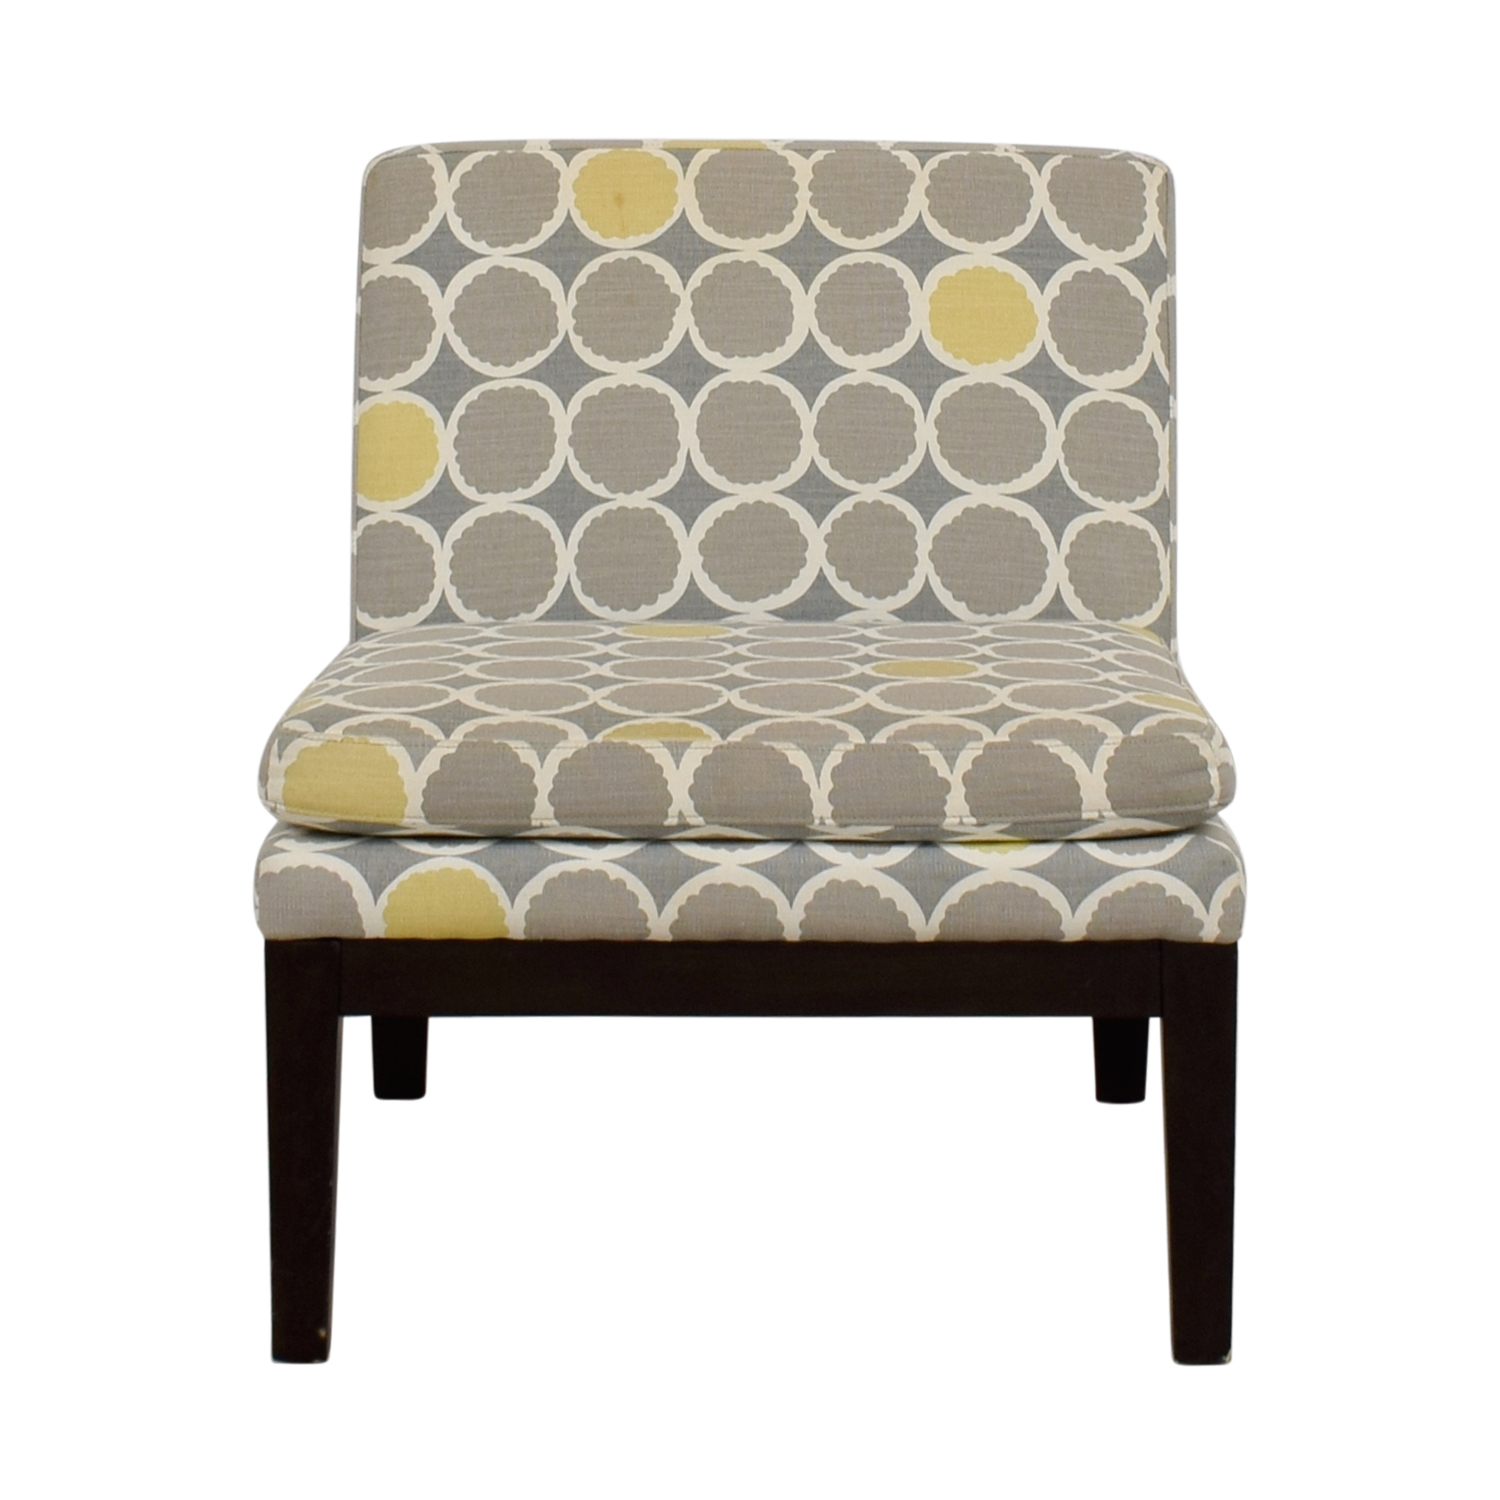 West Elm West Elm Grey Yellow and White Accent Chair coupon